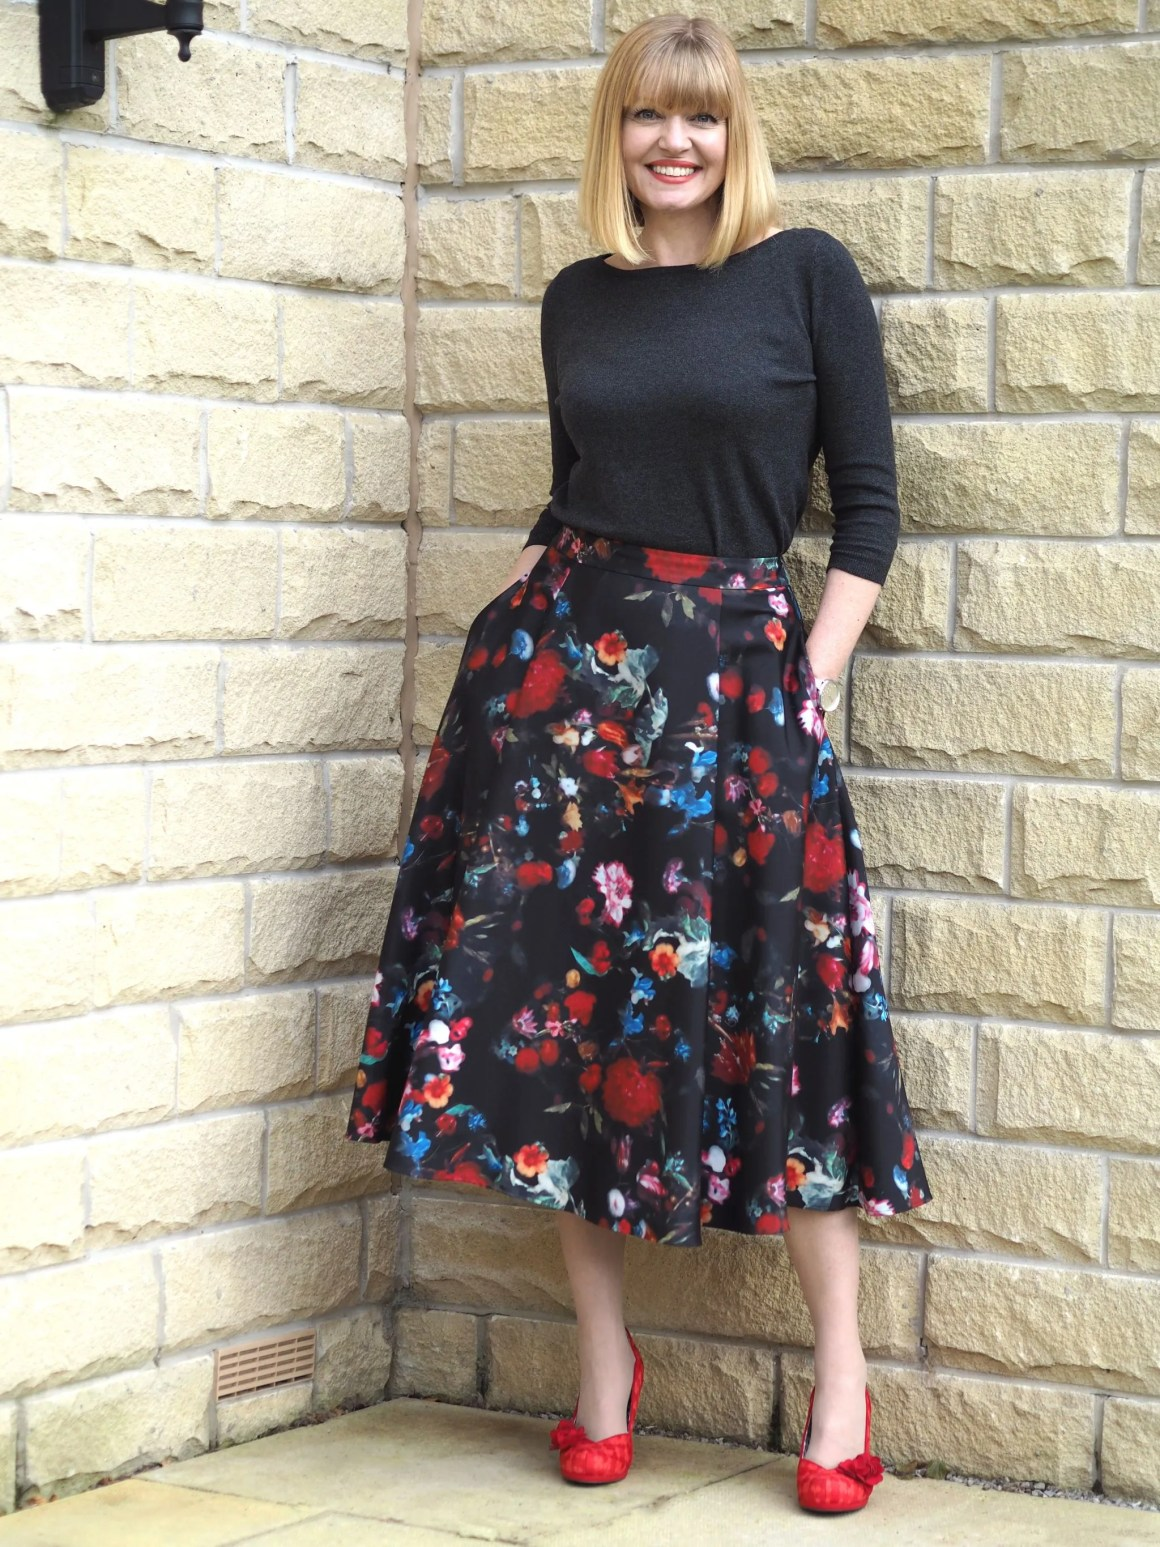 Work outfits crew neck sweater and flared midi skirt